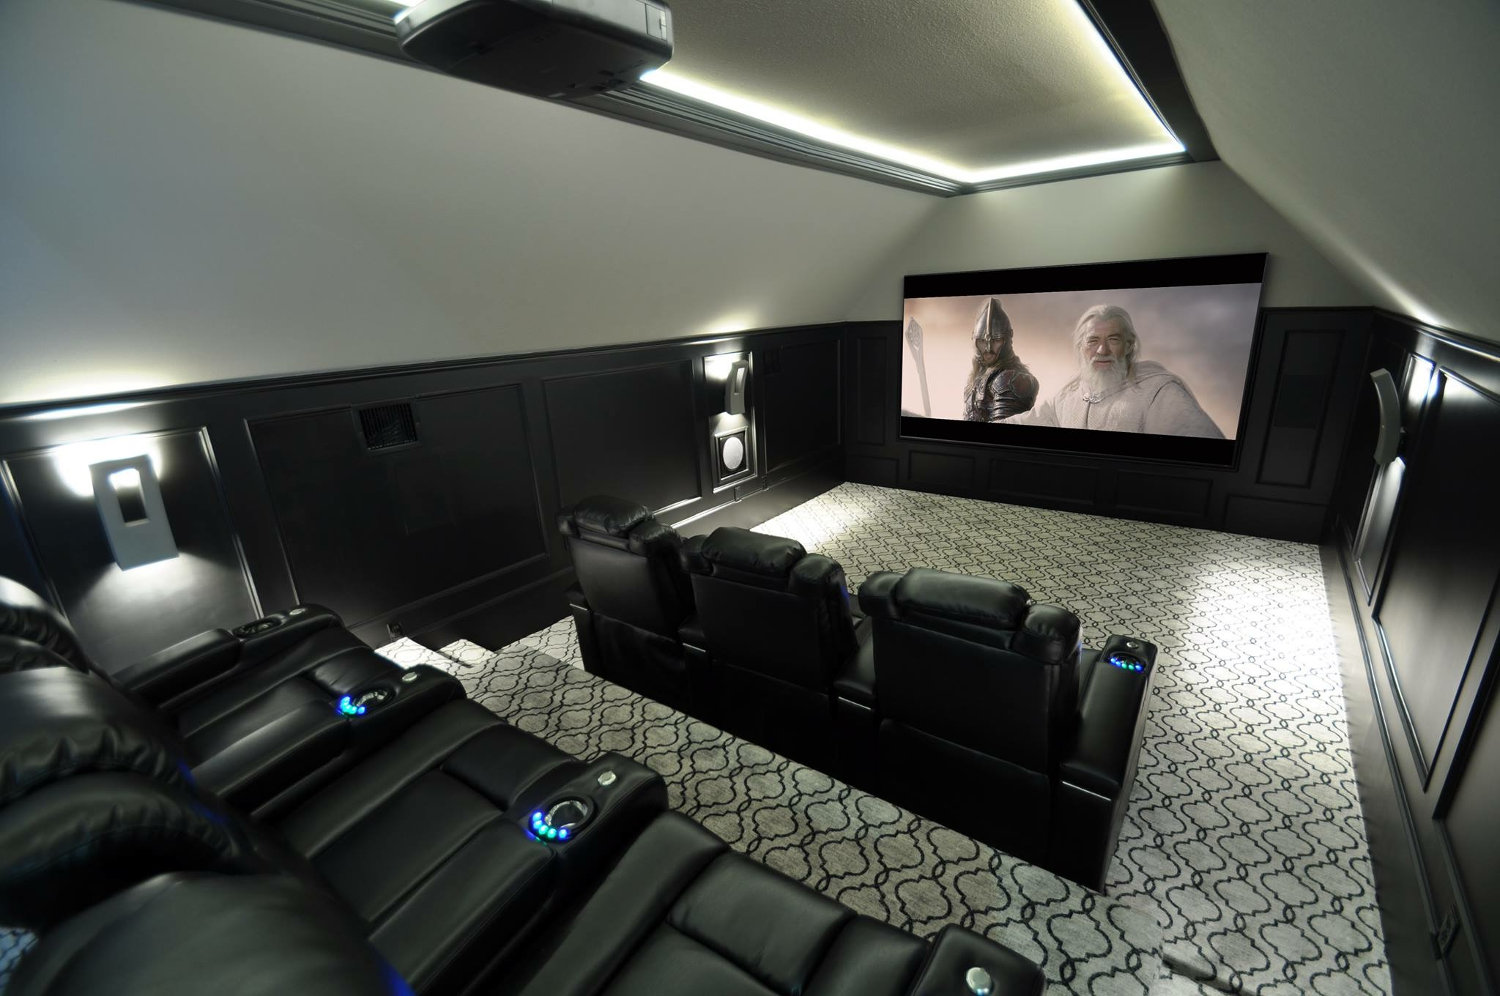 Awesome A Home Theater Designer Is As On Trend With The Furnishings And Color Scheme